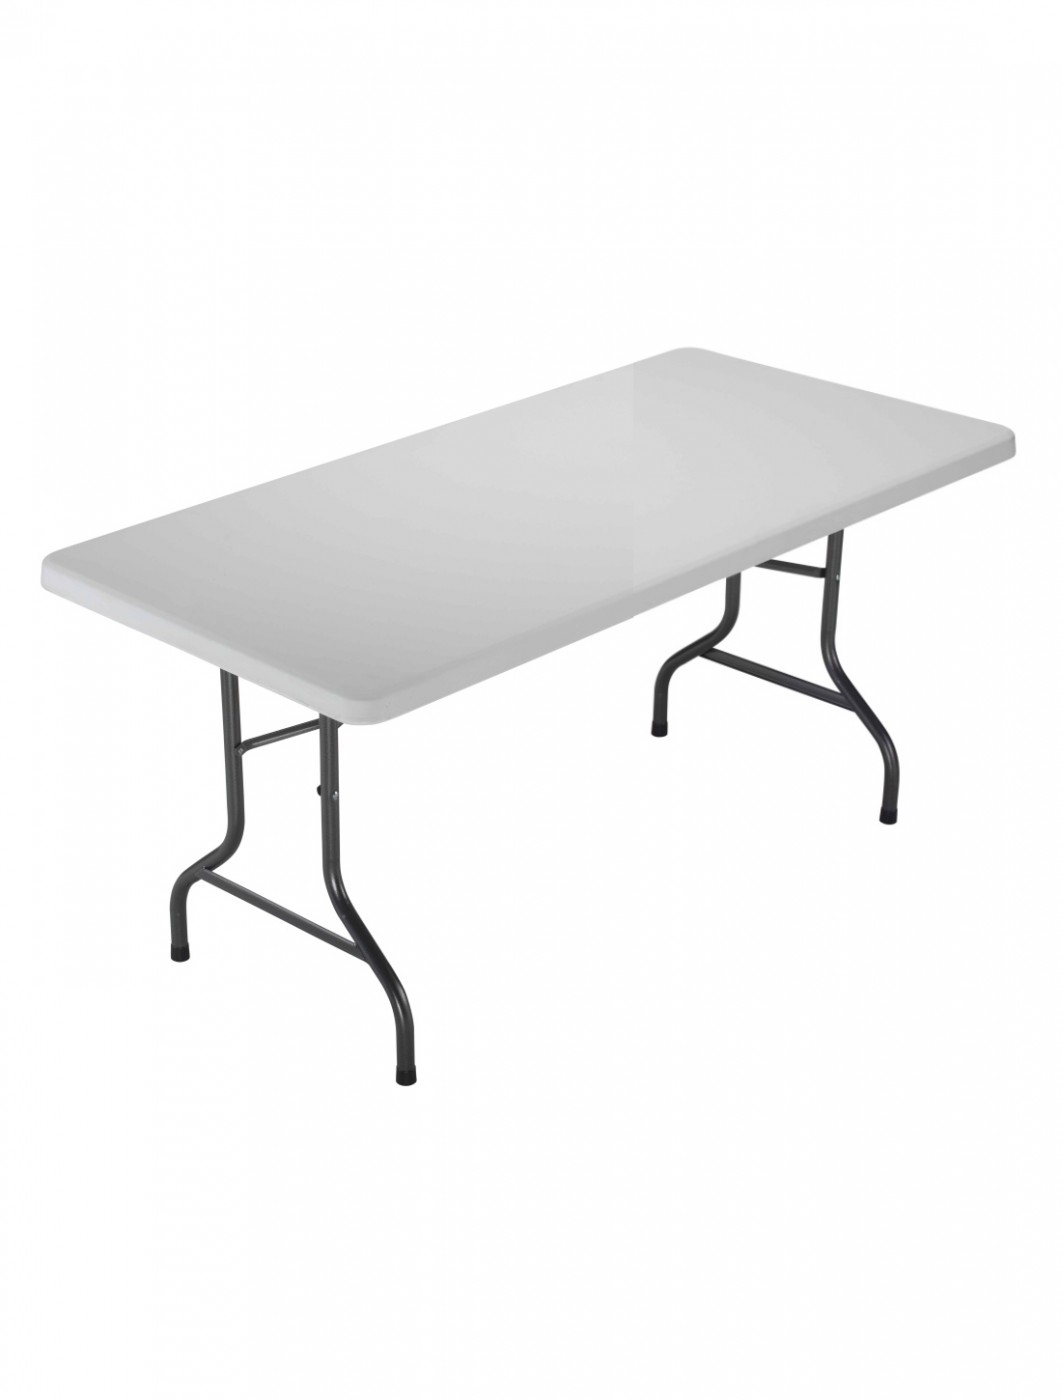 Folding Tables - TC Morph White 1220mm Rectangular Folding Table OF0403WH